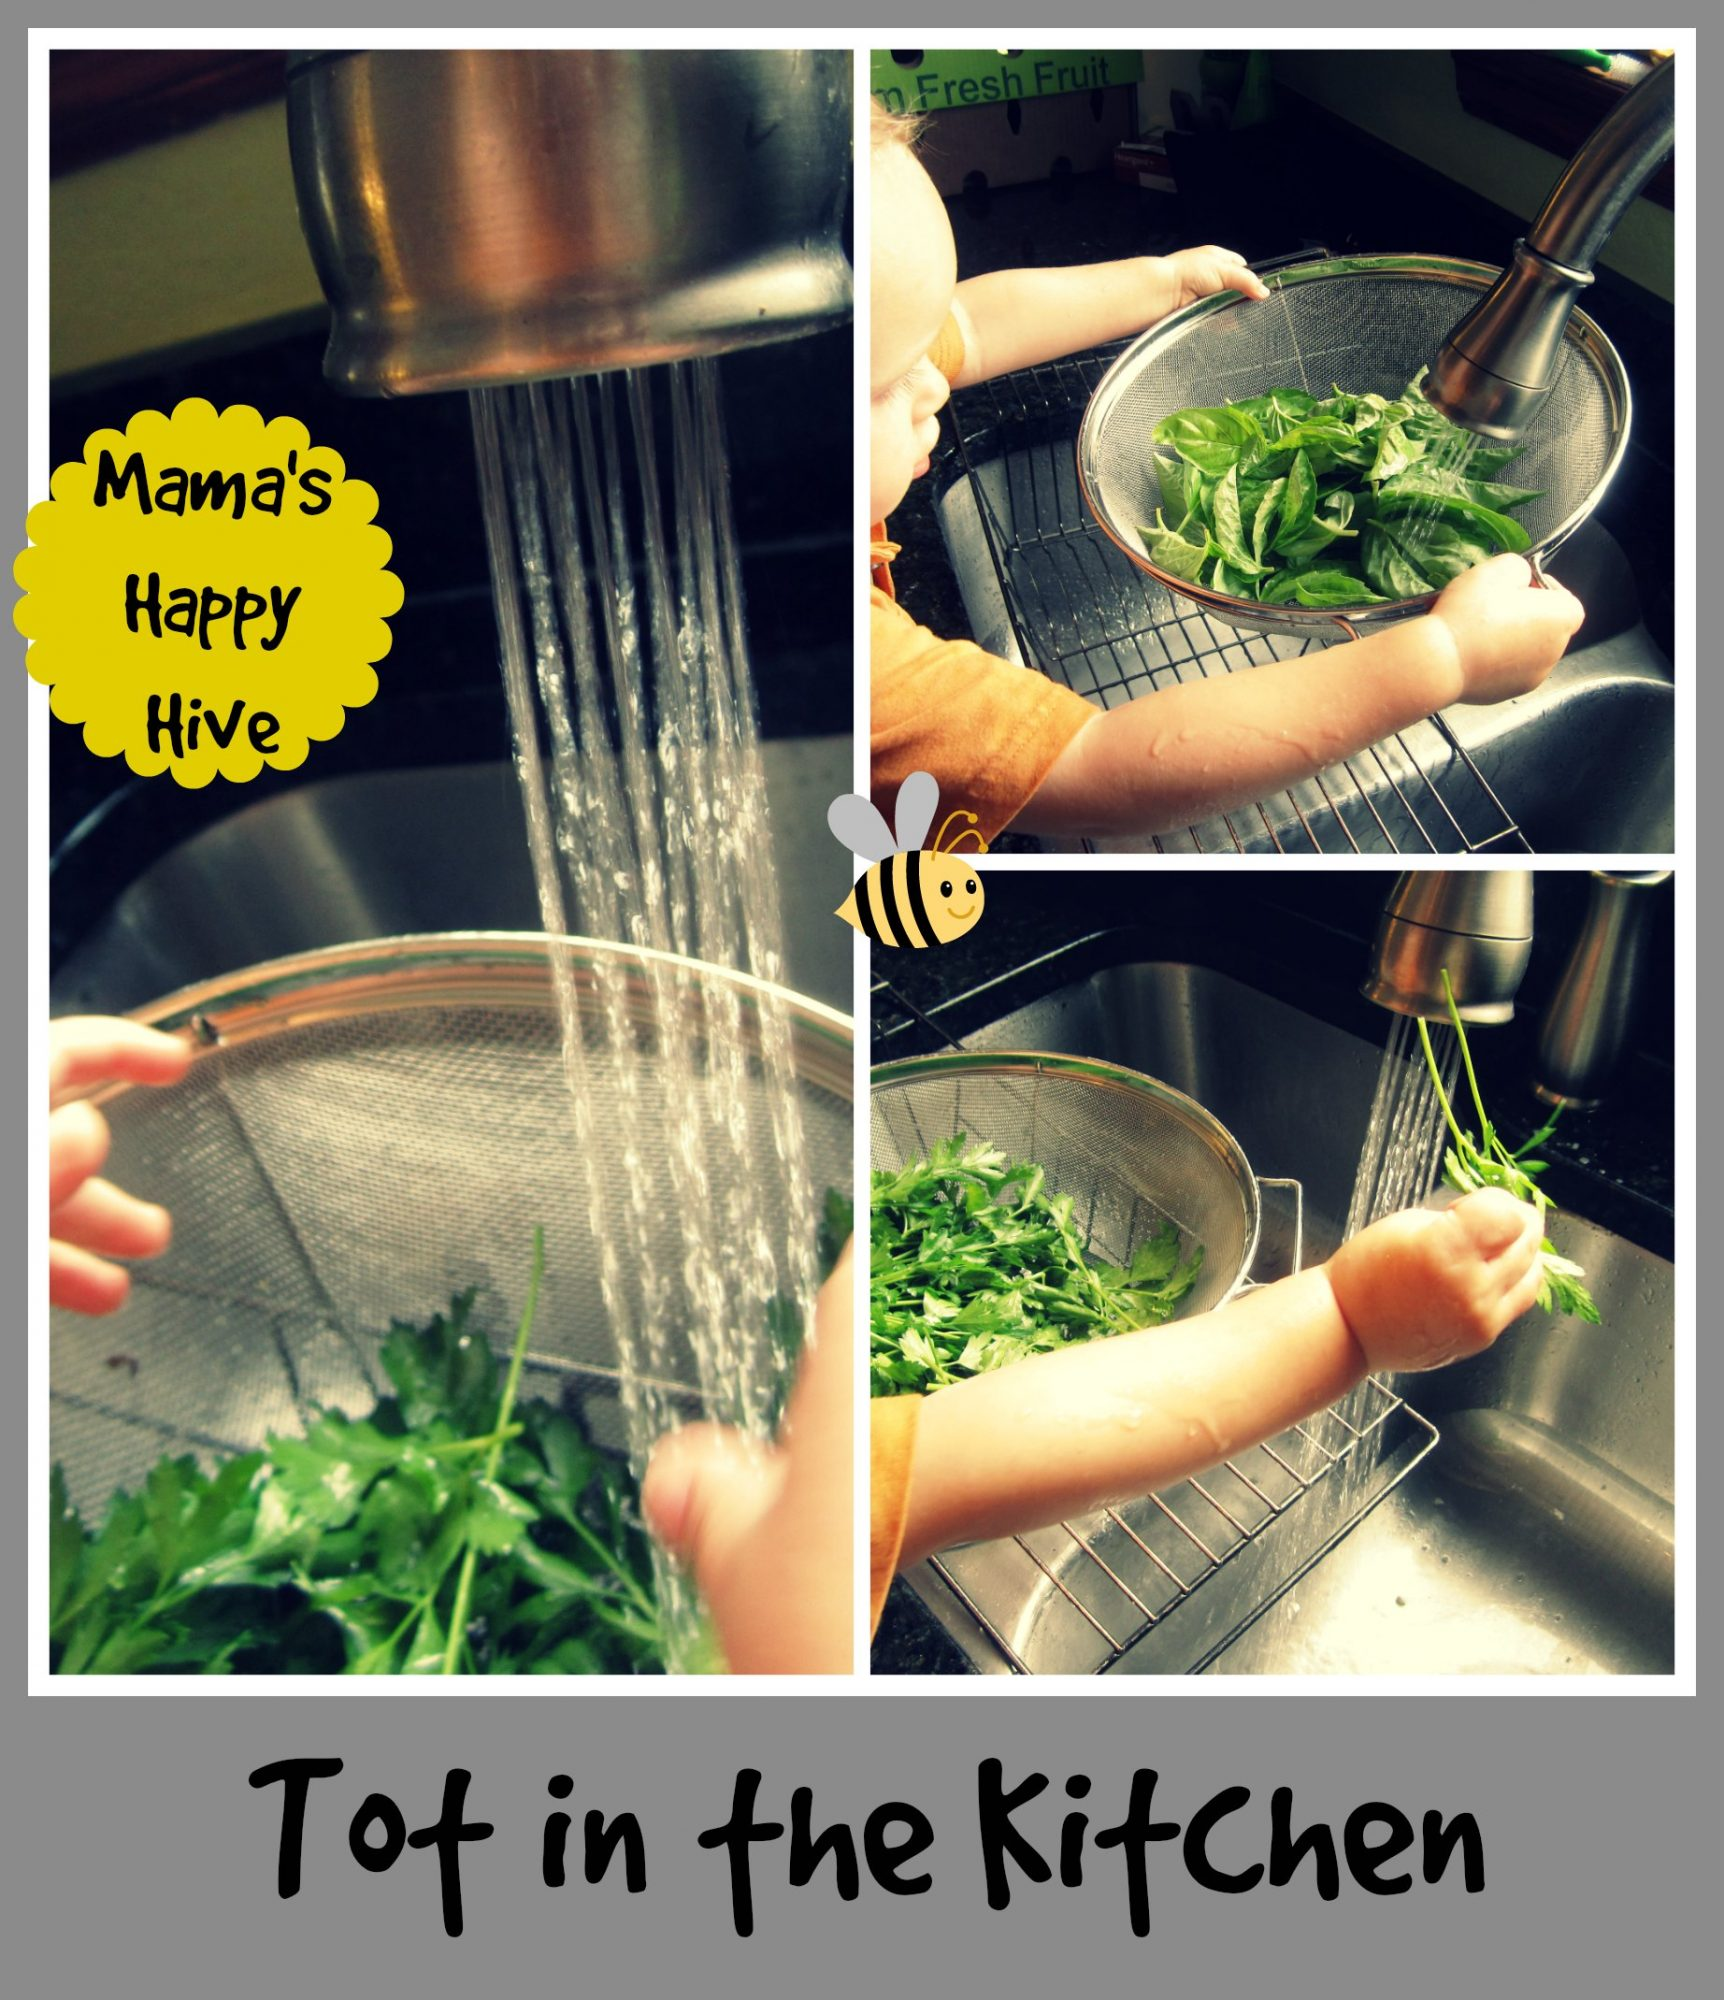 Tot in the Kitchen - httpwww.mamashappyhive.com